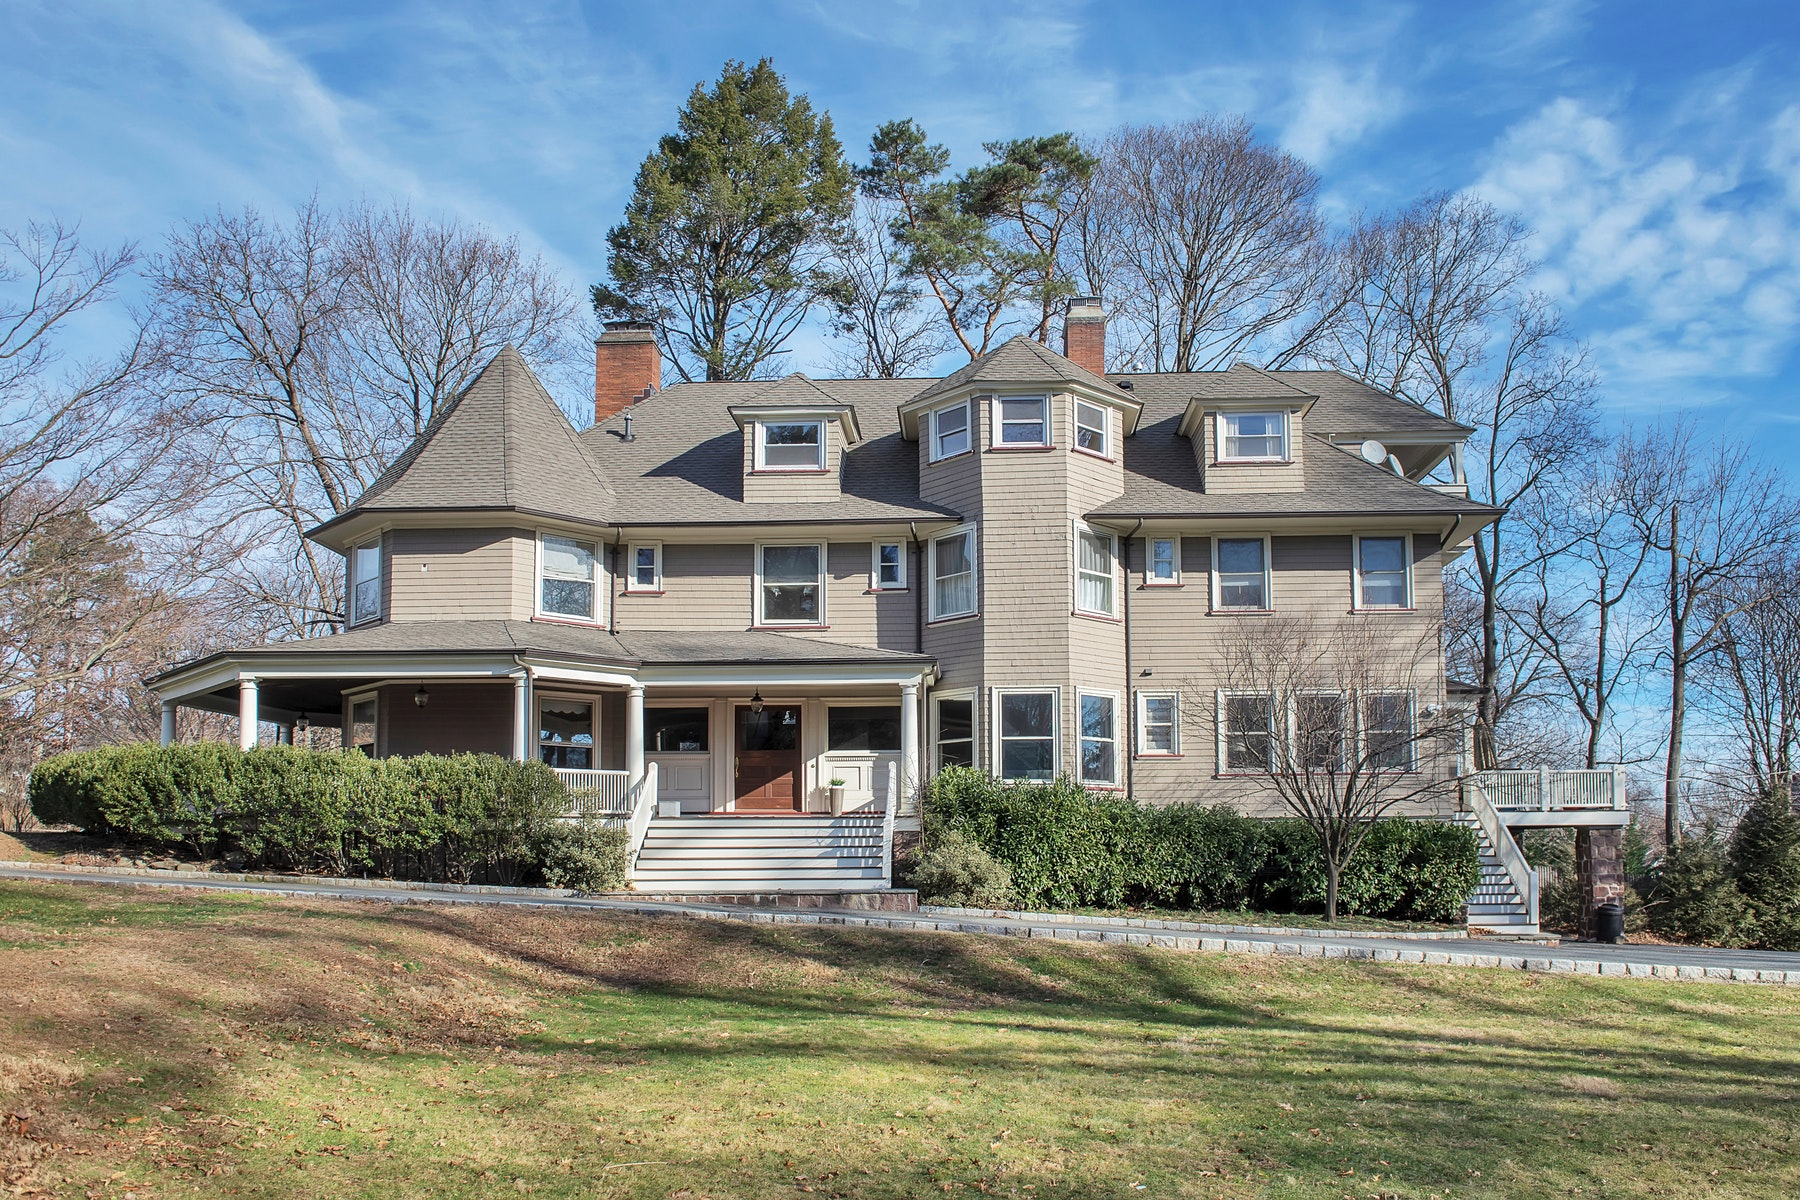 Single Family Home for Sale at Wistful Vista 79 Ridgewood Avenue, Glen Ridge, New Jersey 07028 United States